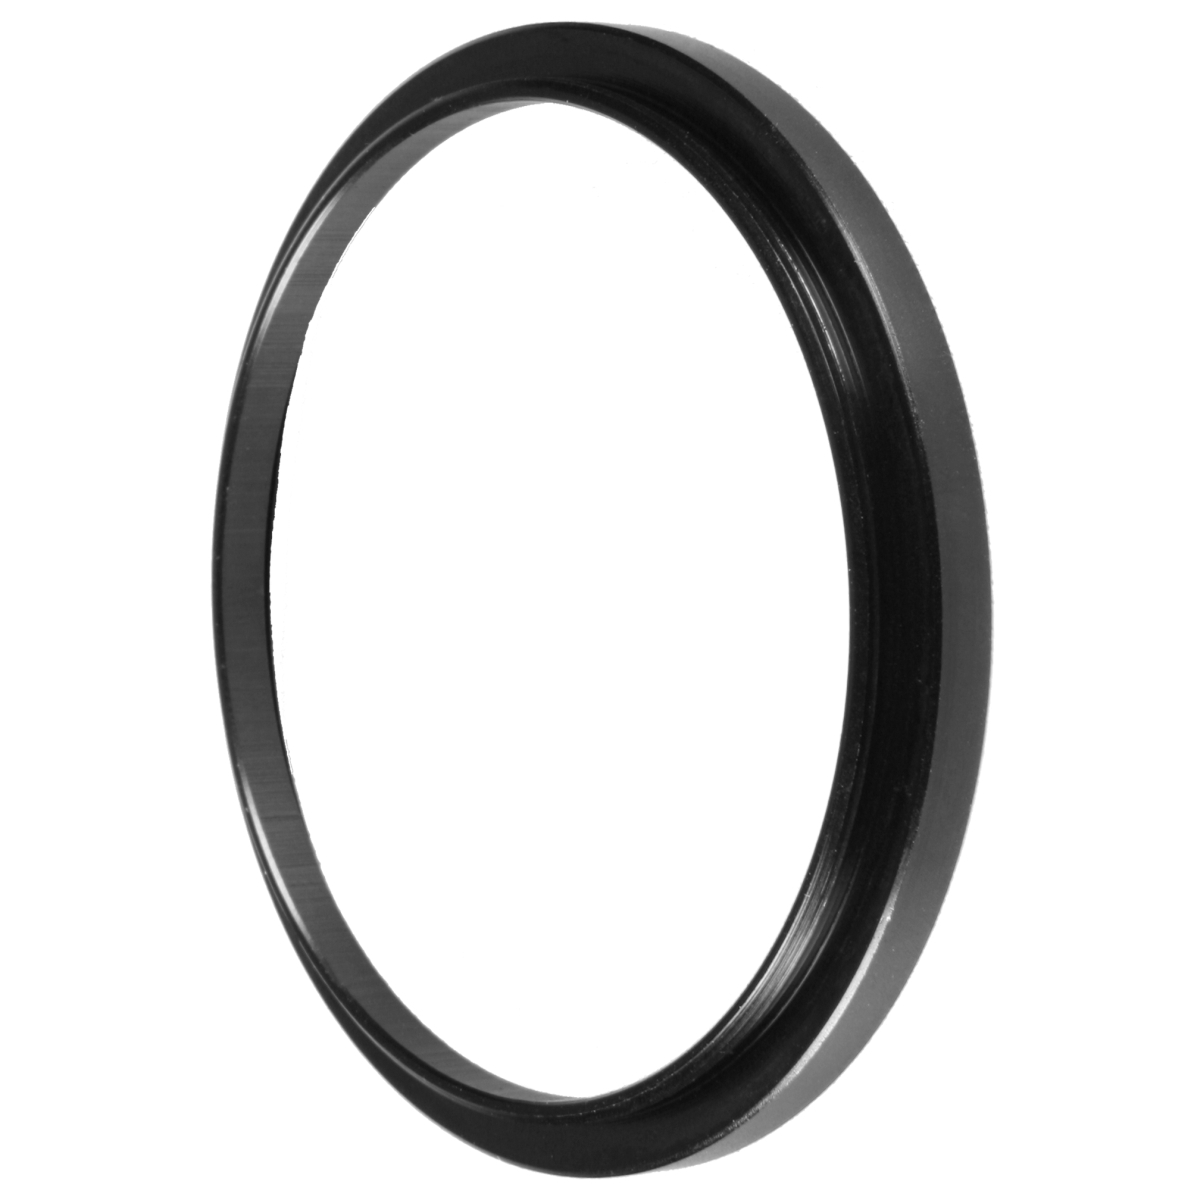 Kipon Adapter Ring 62mm to 58mm